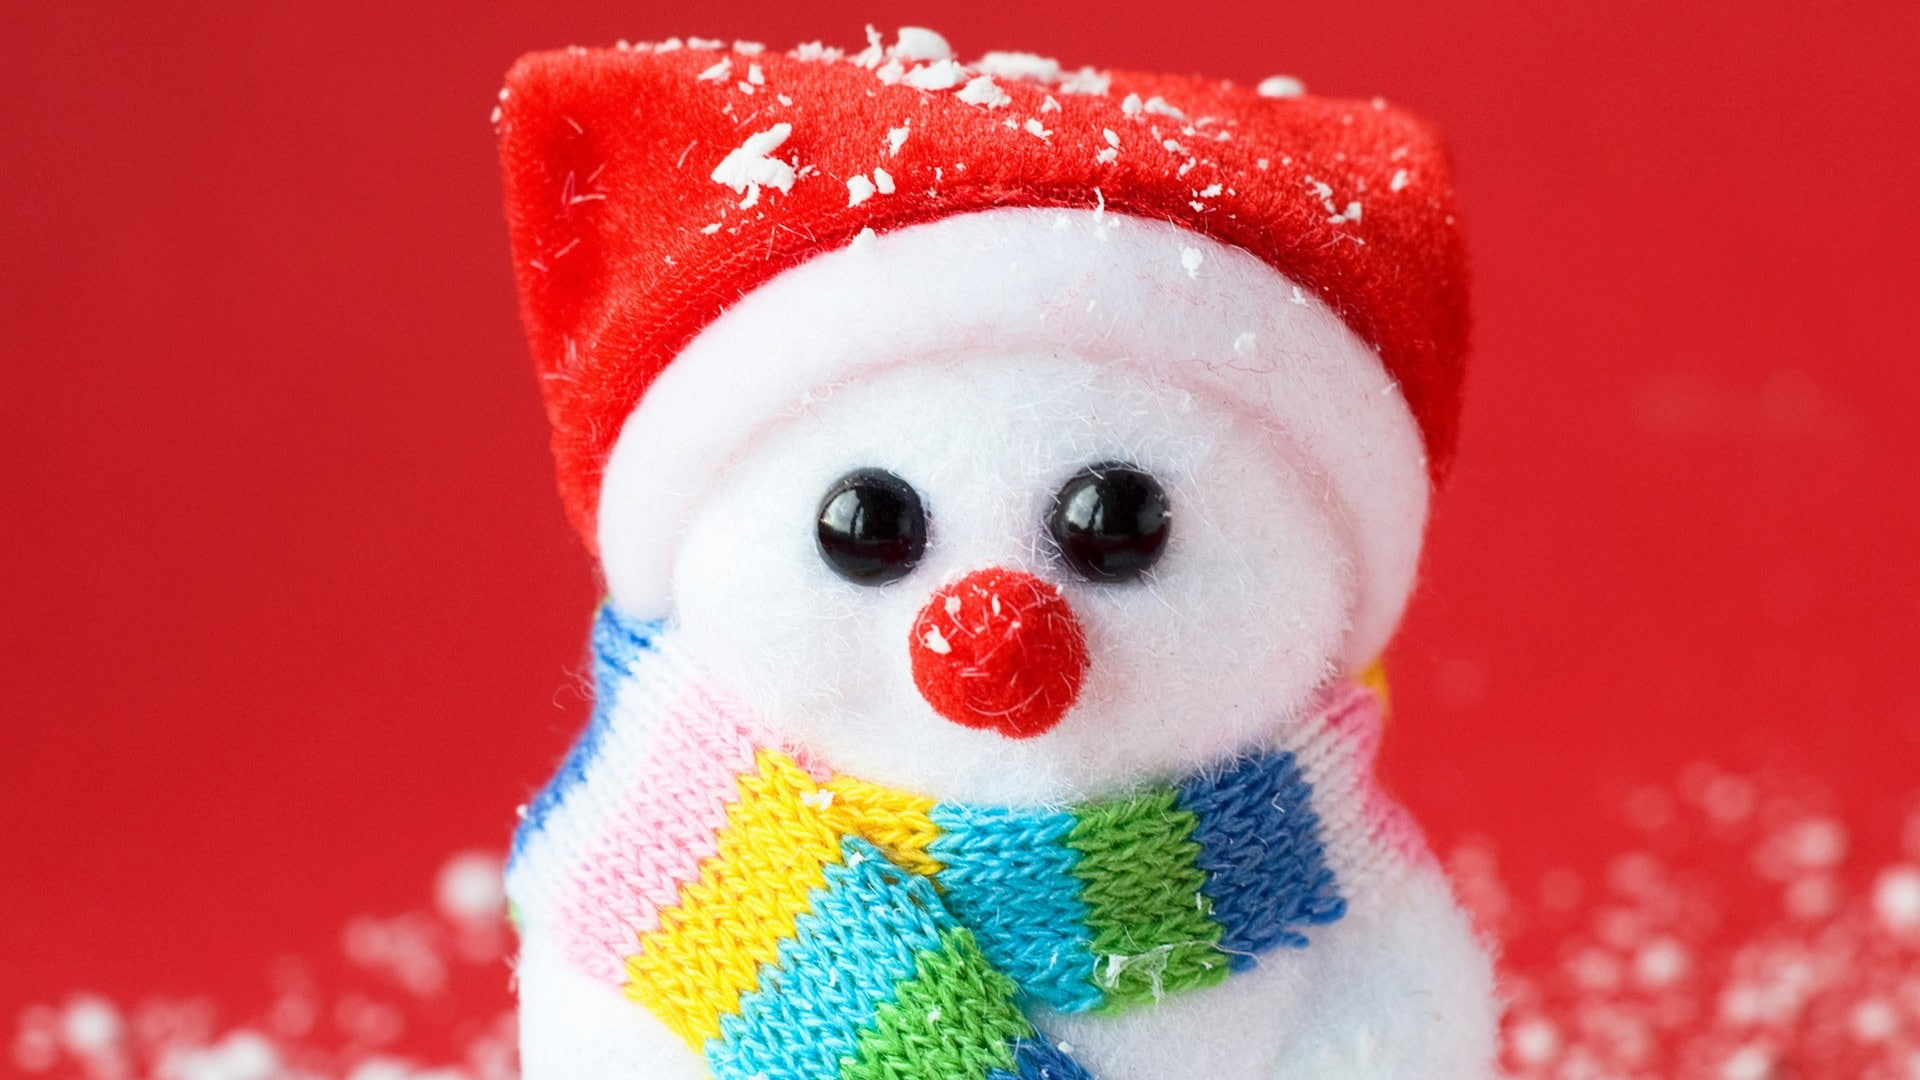 pictures of real snowman in hd